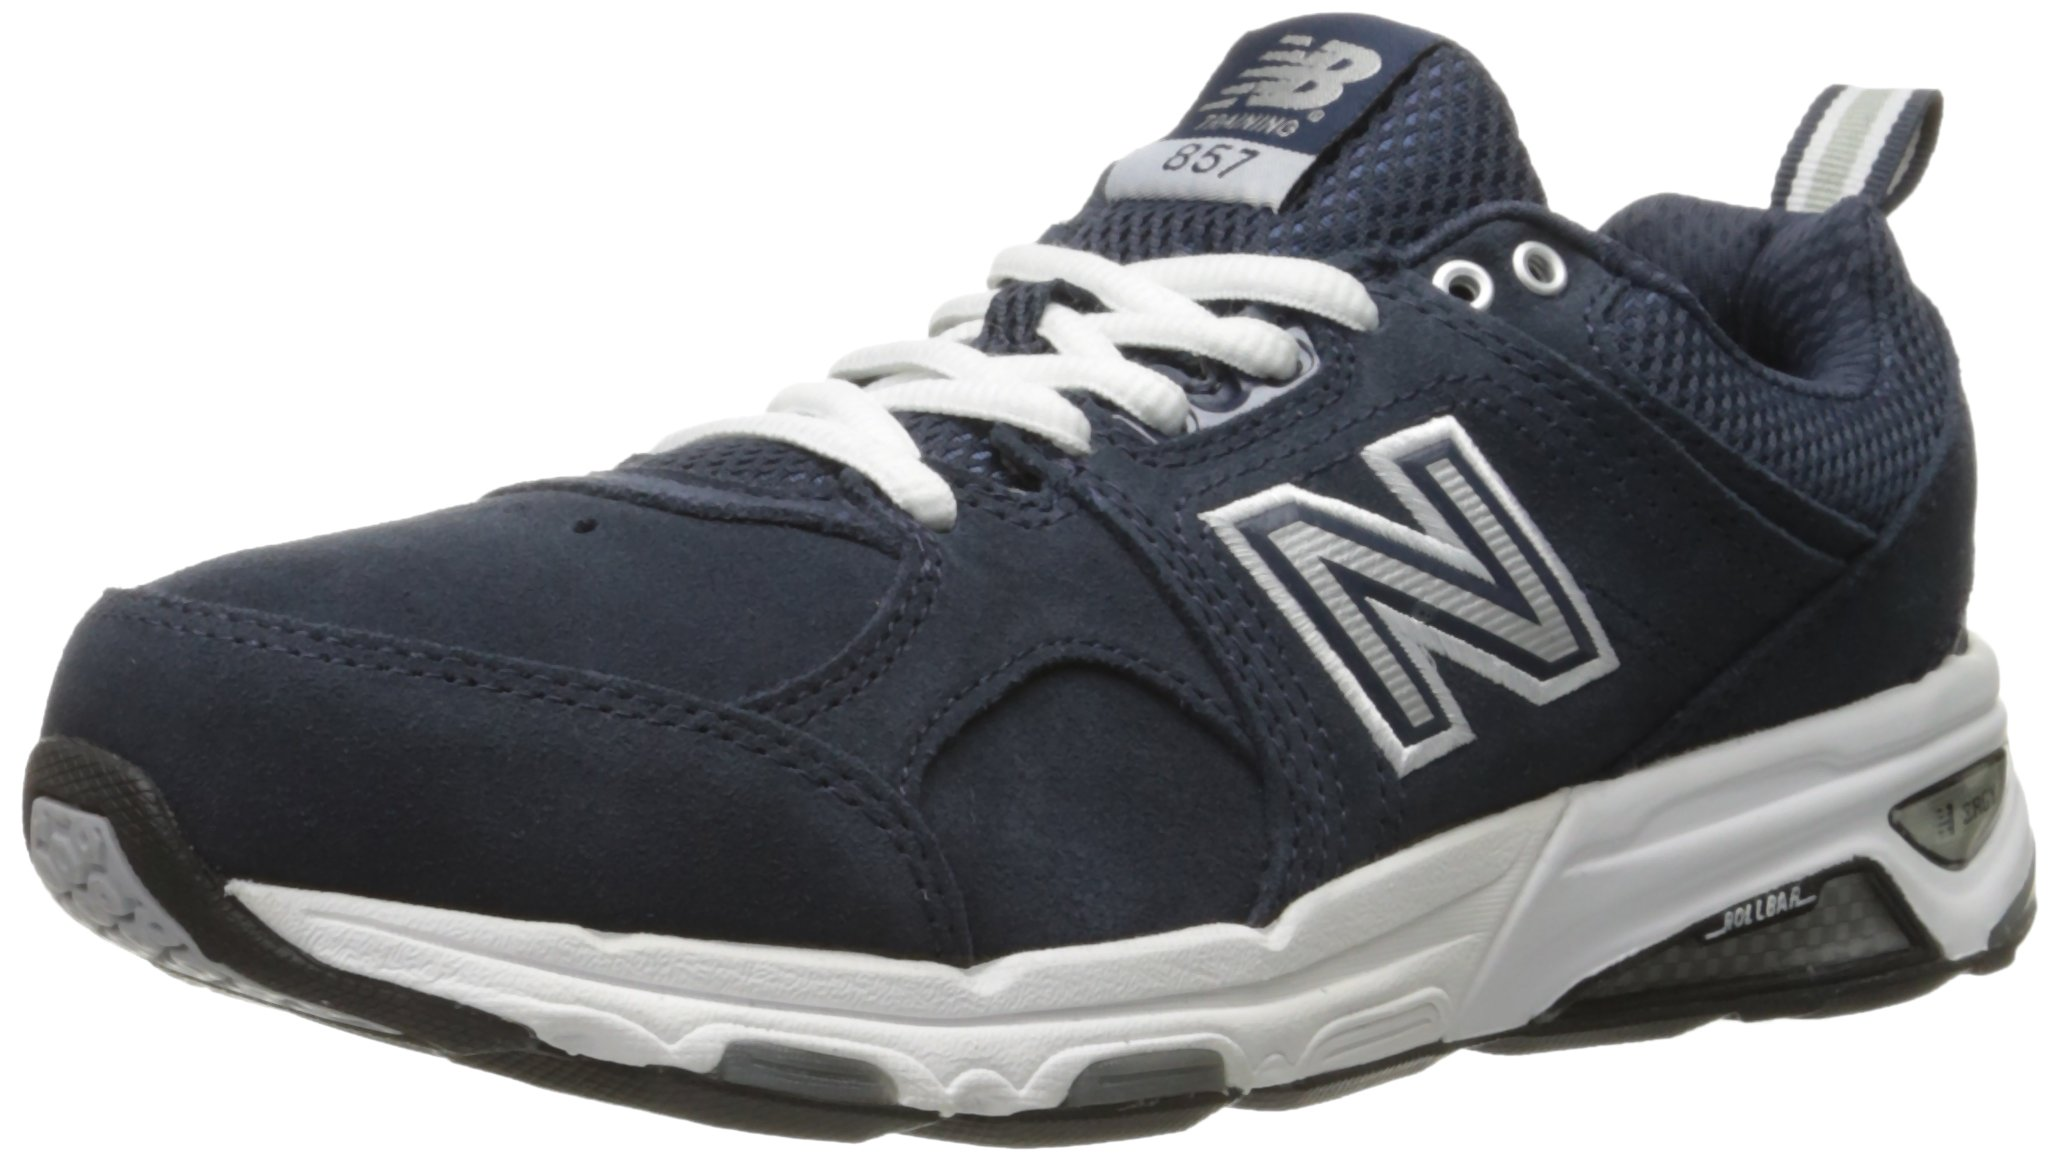 New Balance Women's WX857V1 Training Shoe, Navy/White, 7.5 D US